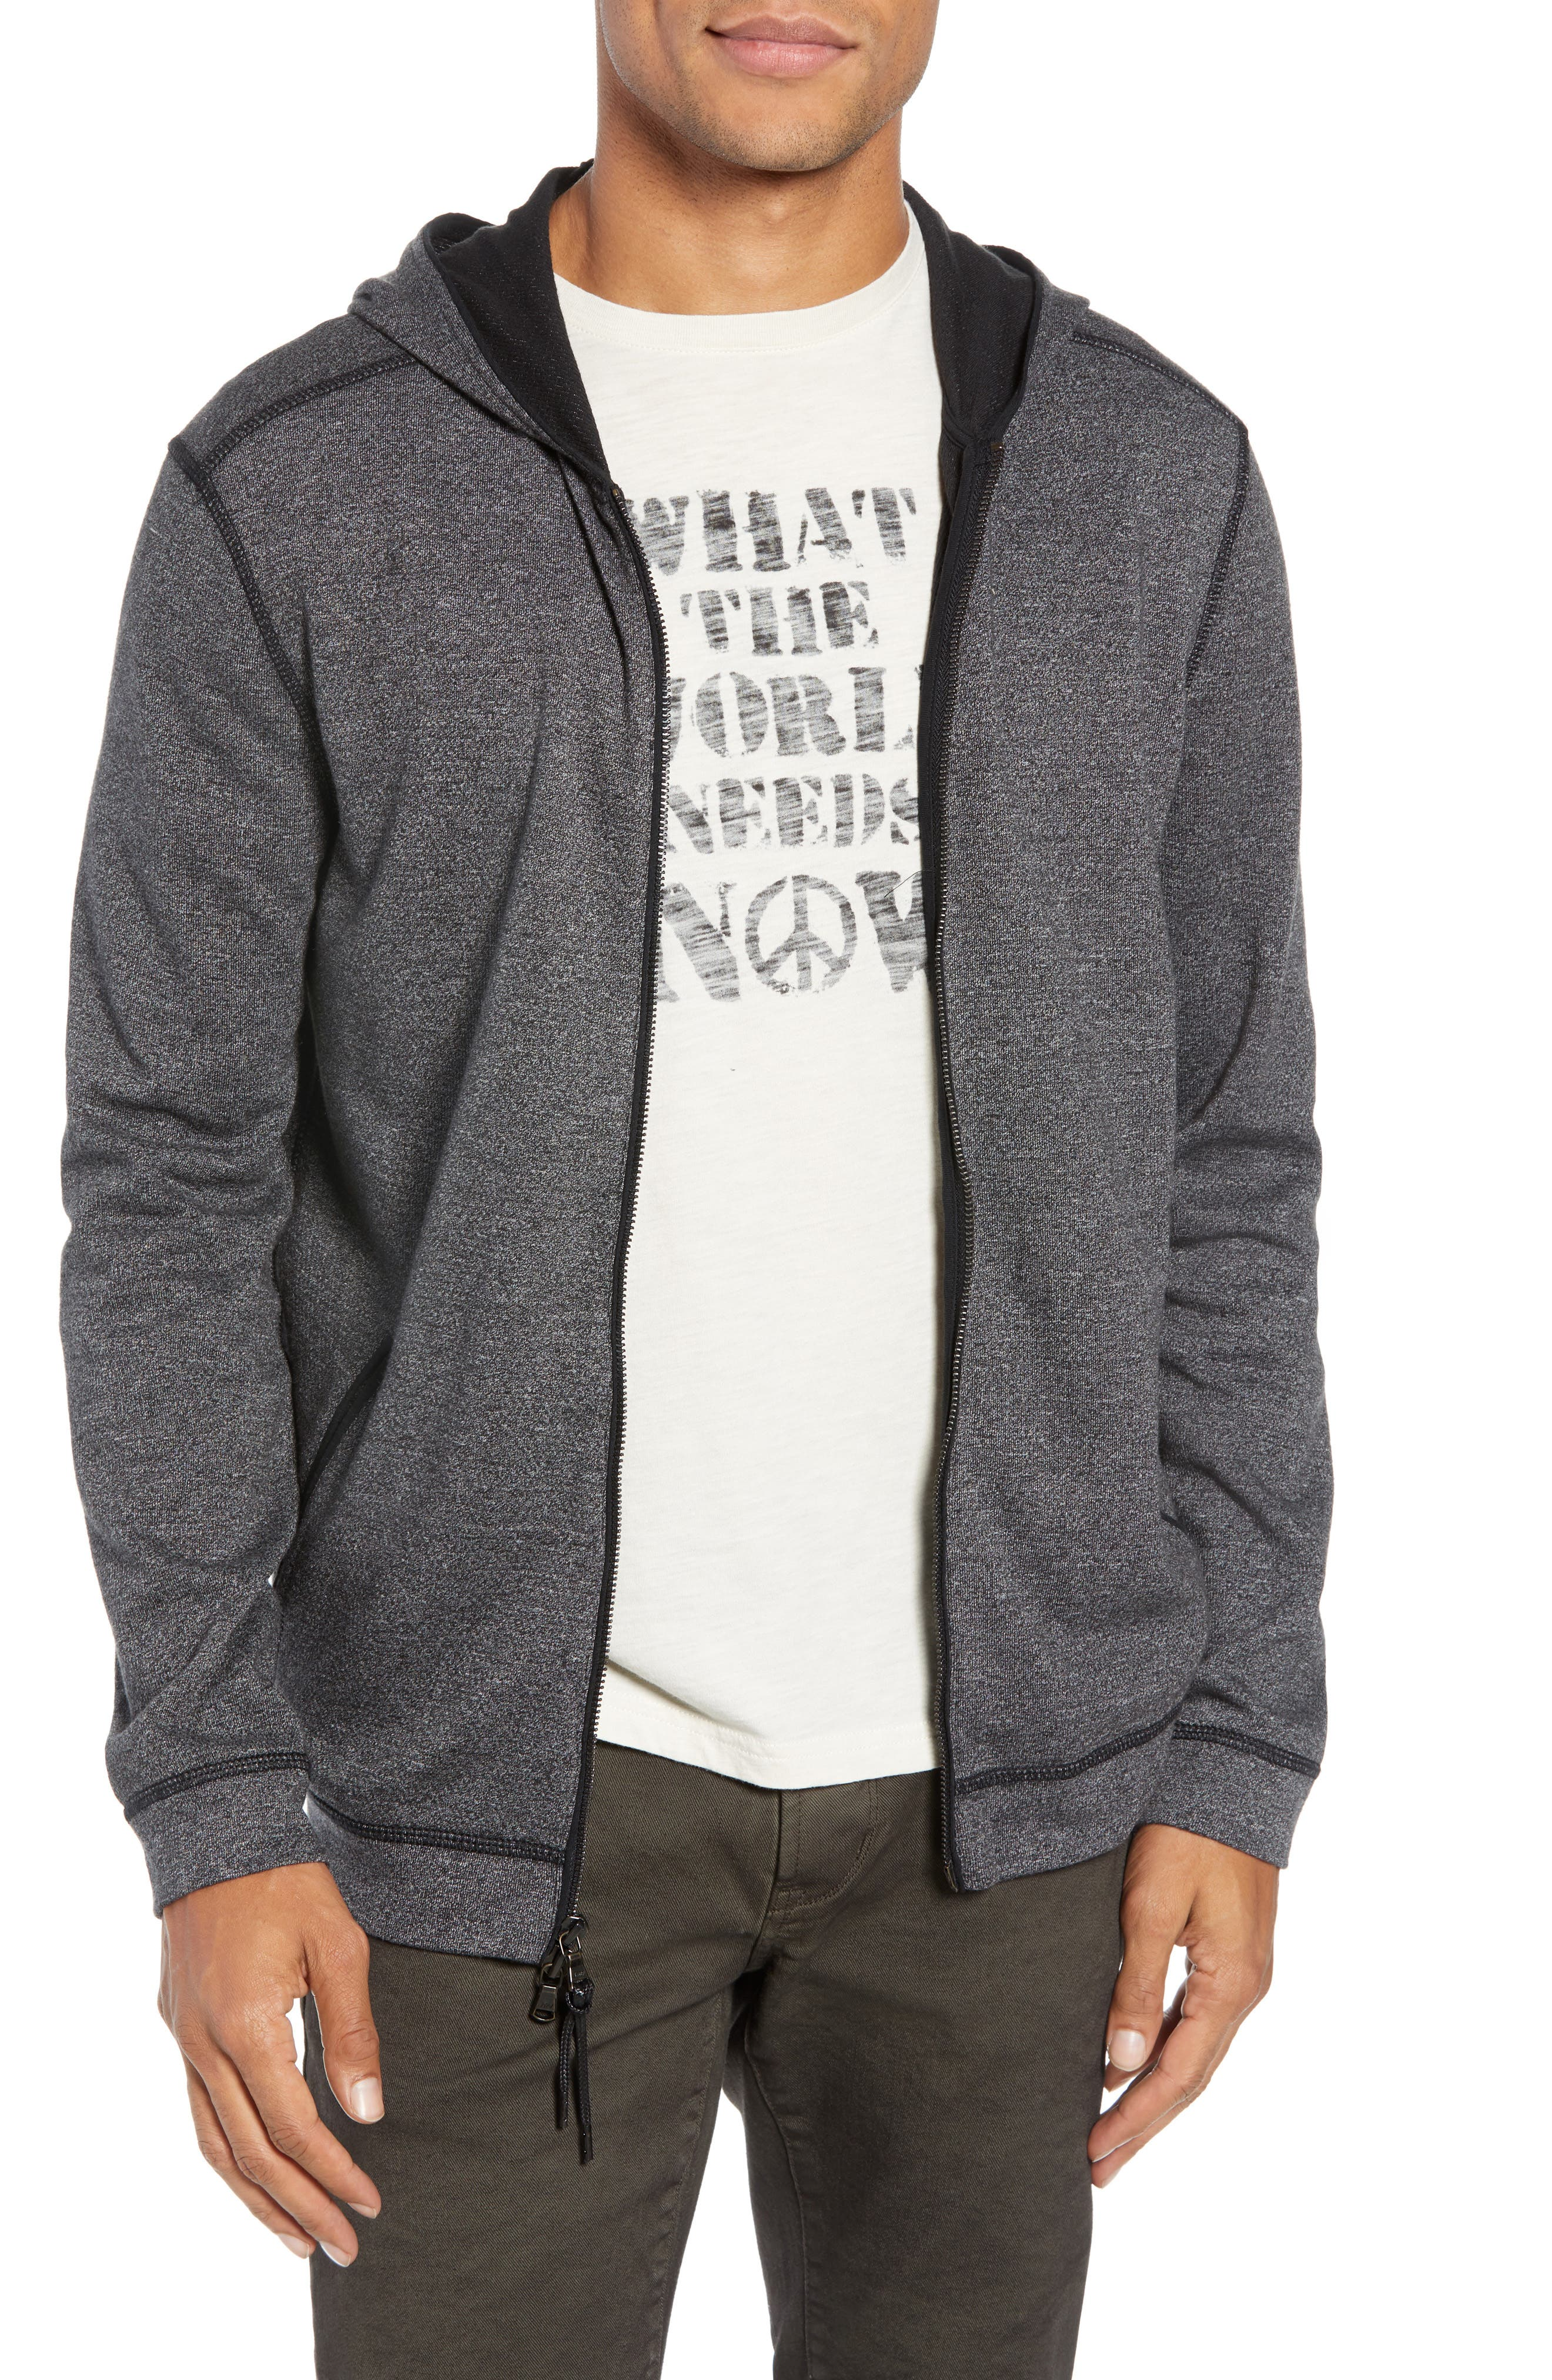 Doubleknit Zip Hoodie,                             Main thumbnail 1, color,                             CHARCOAL HEATHER